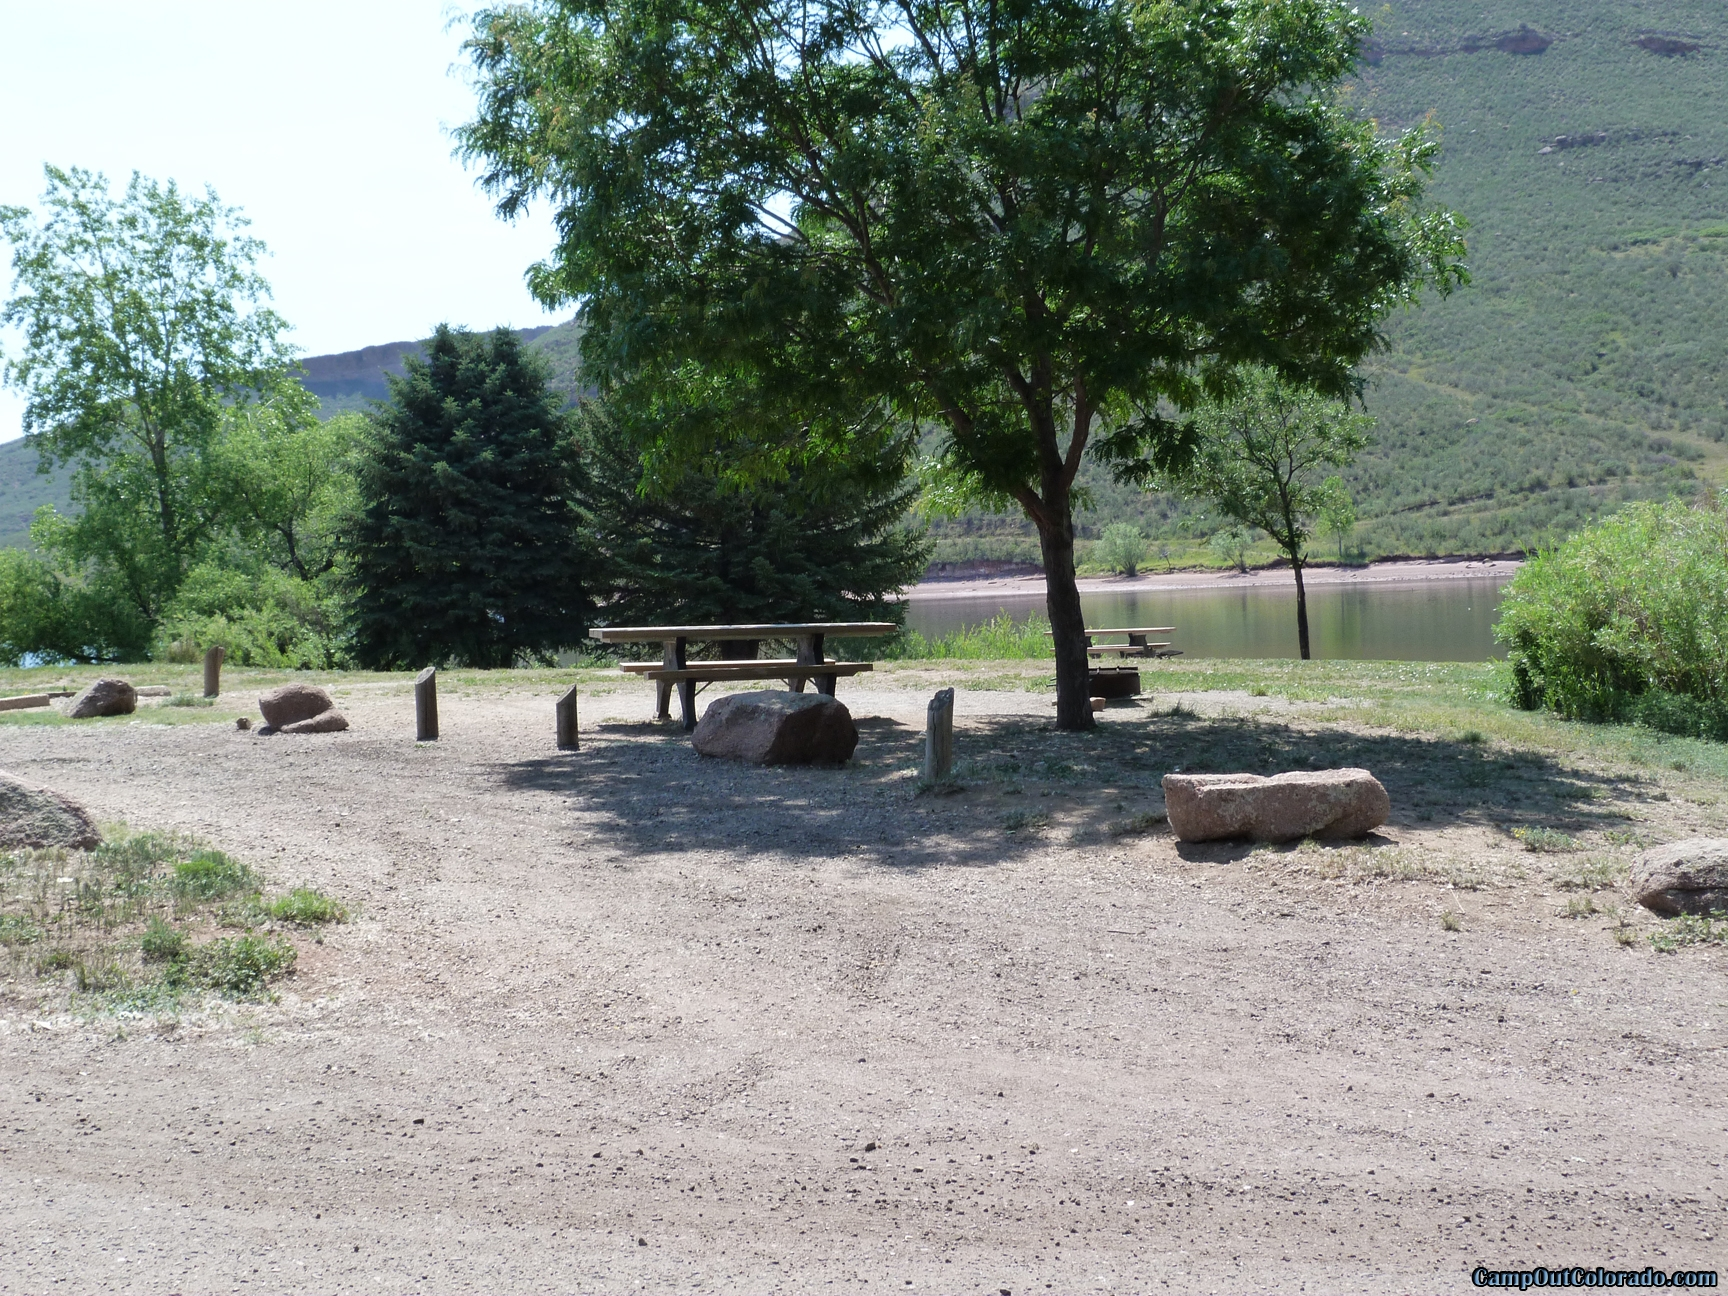 camp-out-colorado-flatirons-reservoir-level-campsite